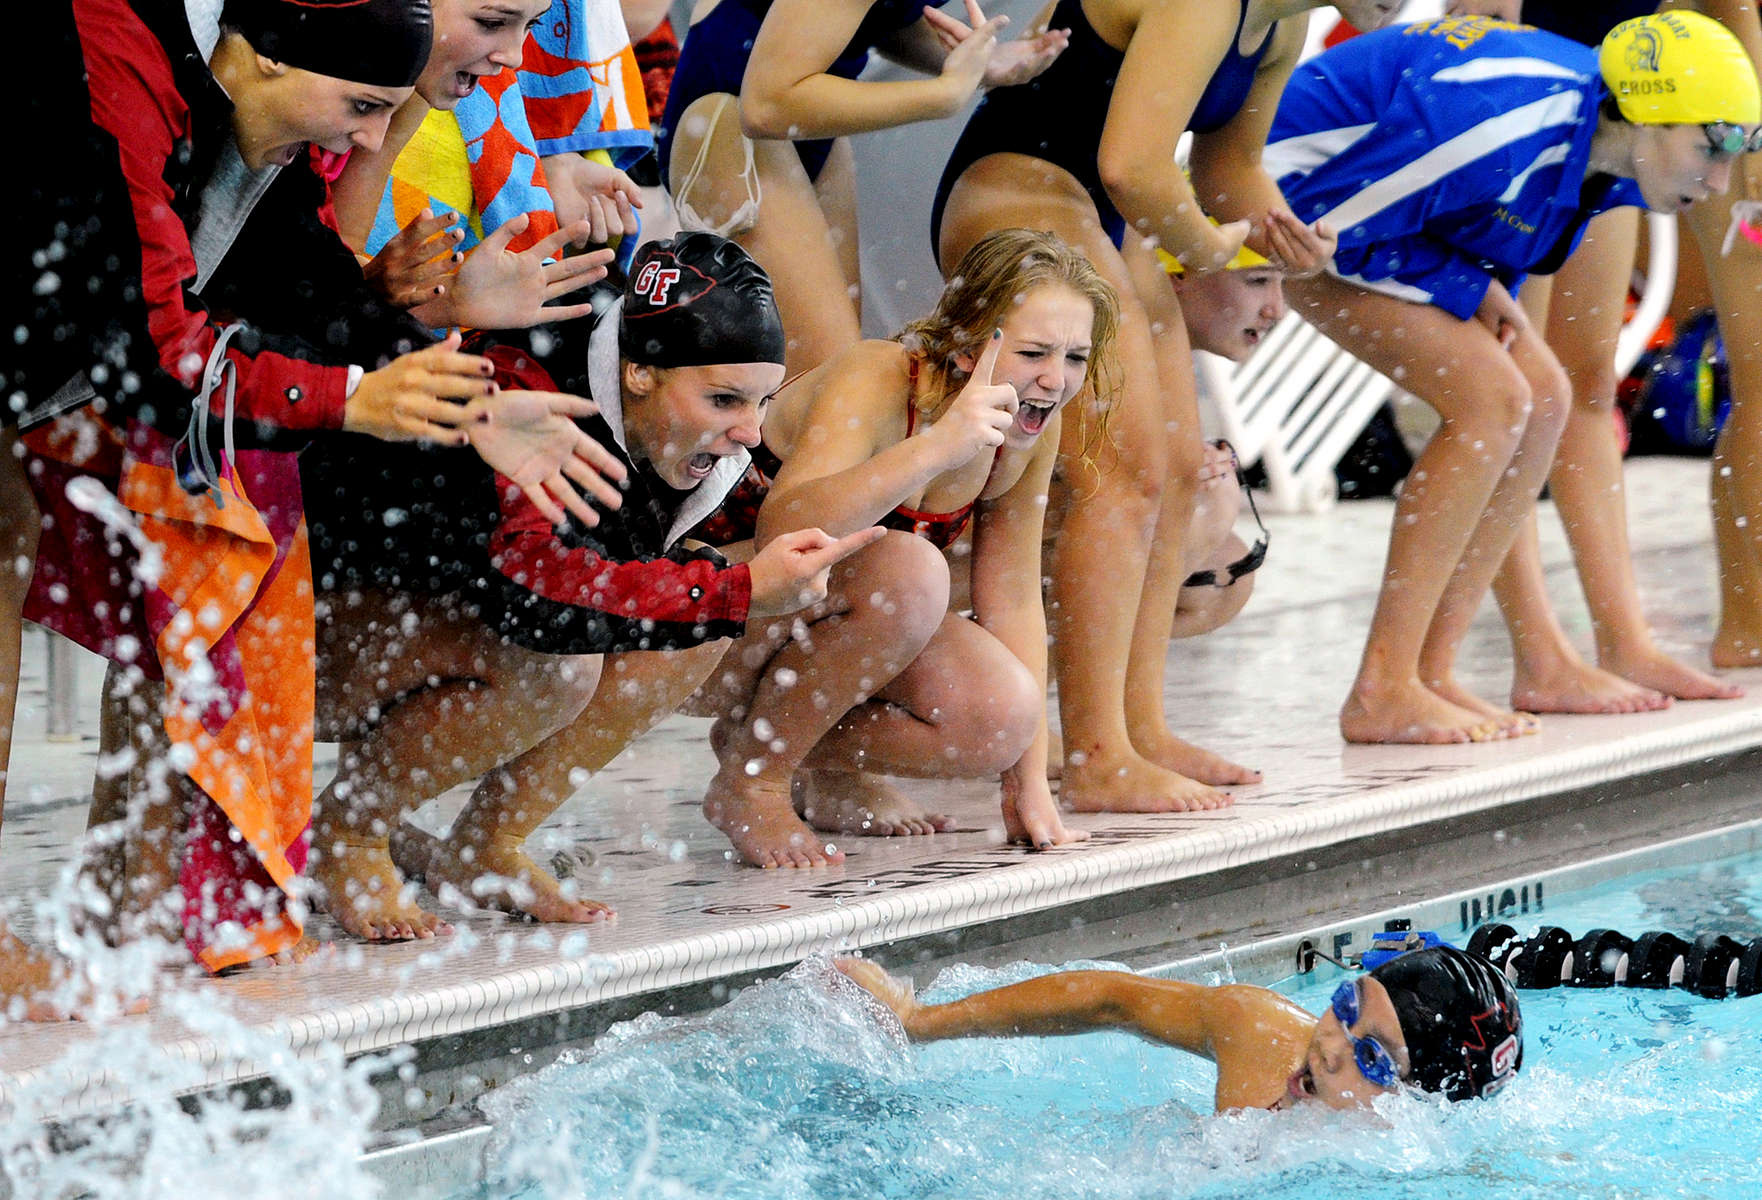 Jason McKibben - jmckibben@poststar.comGlens Falls\' Mia Cote gets a lot of vocal encouragement from her teammates as she swims in the 100-yard butterfly event against Queensbury Thursday, September 29, 2011, at Glens Falls High School. Cote finished in 1st place with a time of 1:05.66.